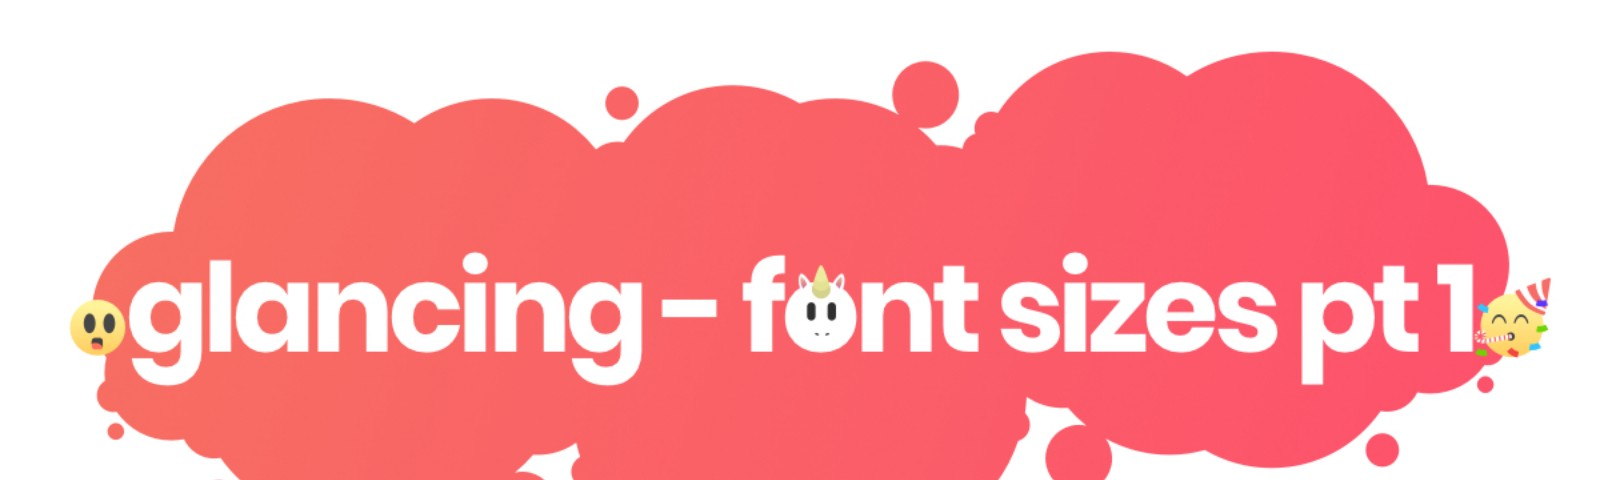 creative m studios savage glancing font sizes part one